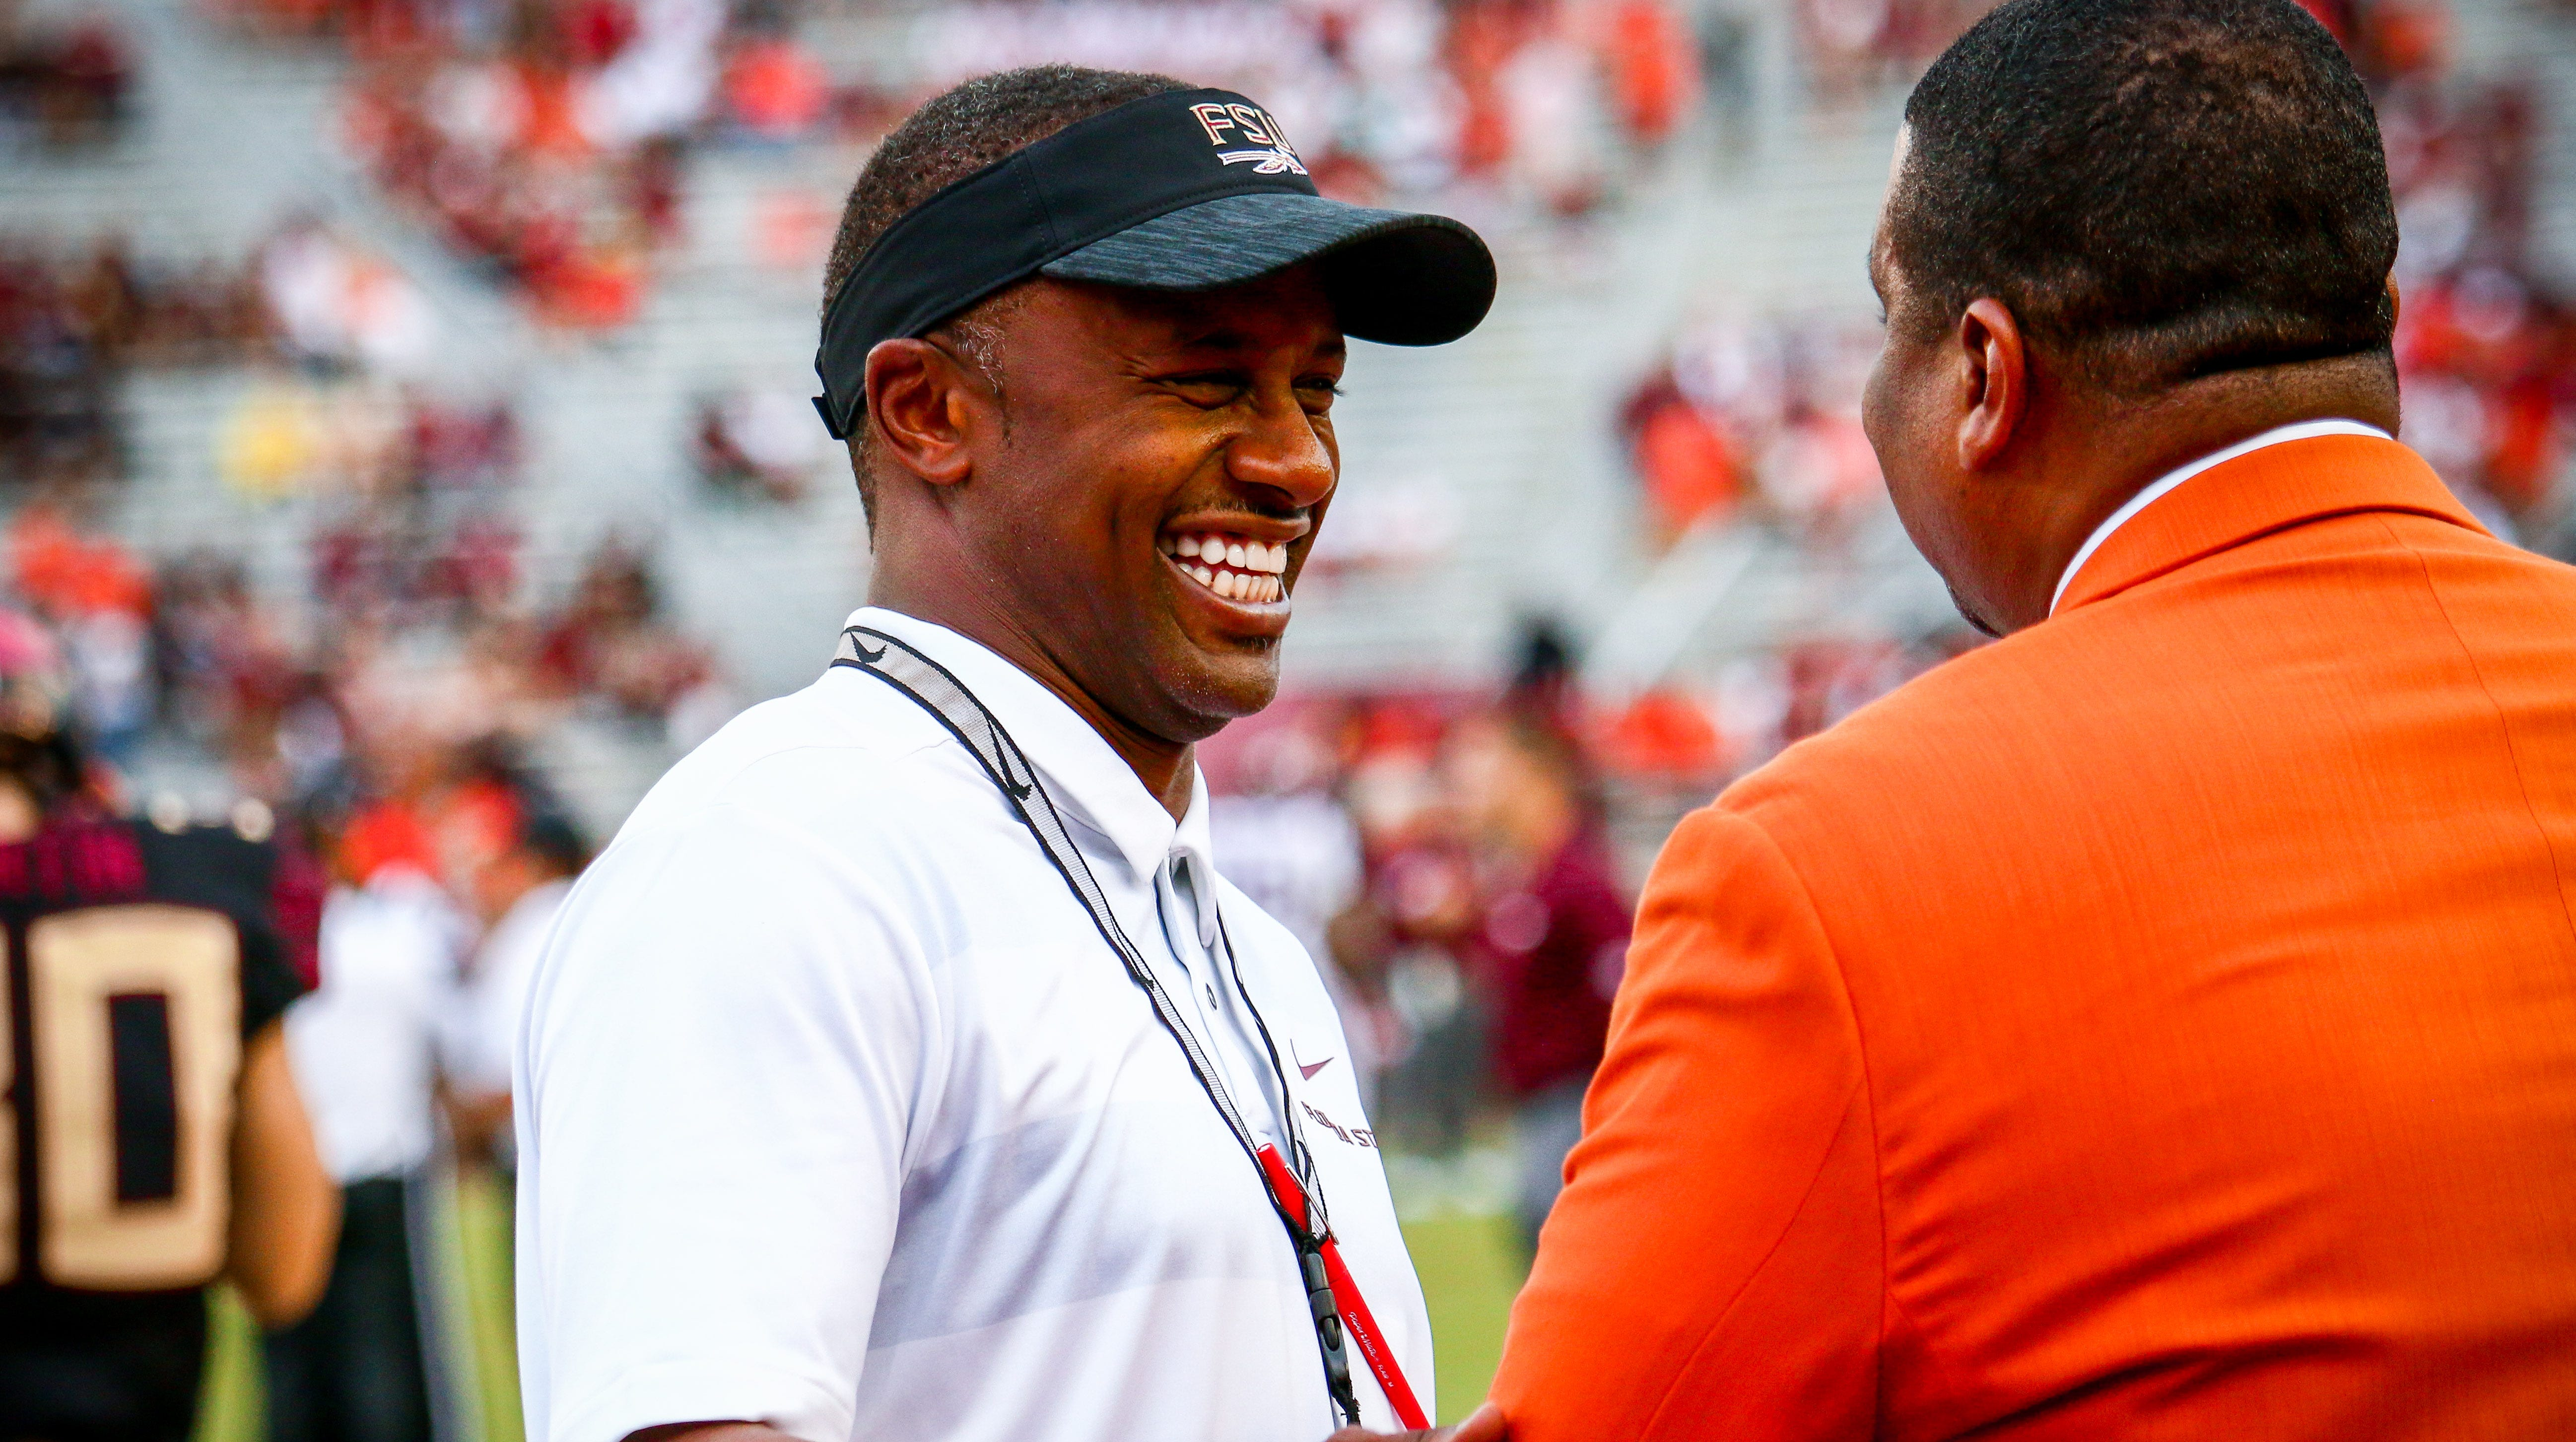 FSU Head Coach, Willie Taggart, shook hands with fans and talked with former FSU coaches and players prior to kickoff at Doak Campbell Stadium. Taggart was all smiles before the game against #20 Virginia Tech on Monday, September 3rd.